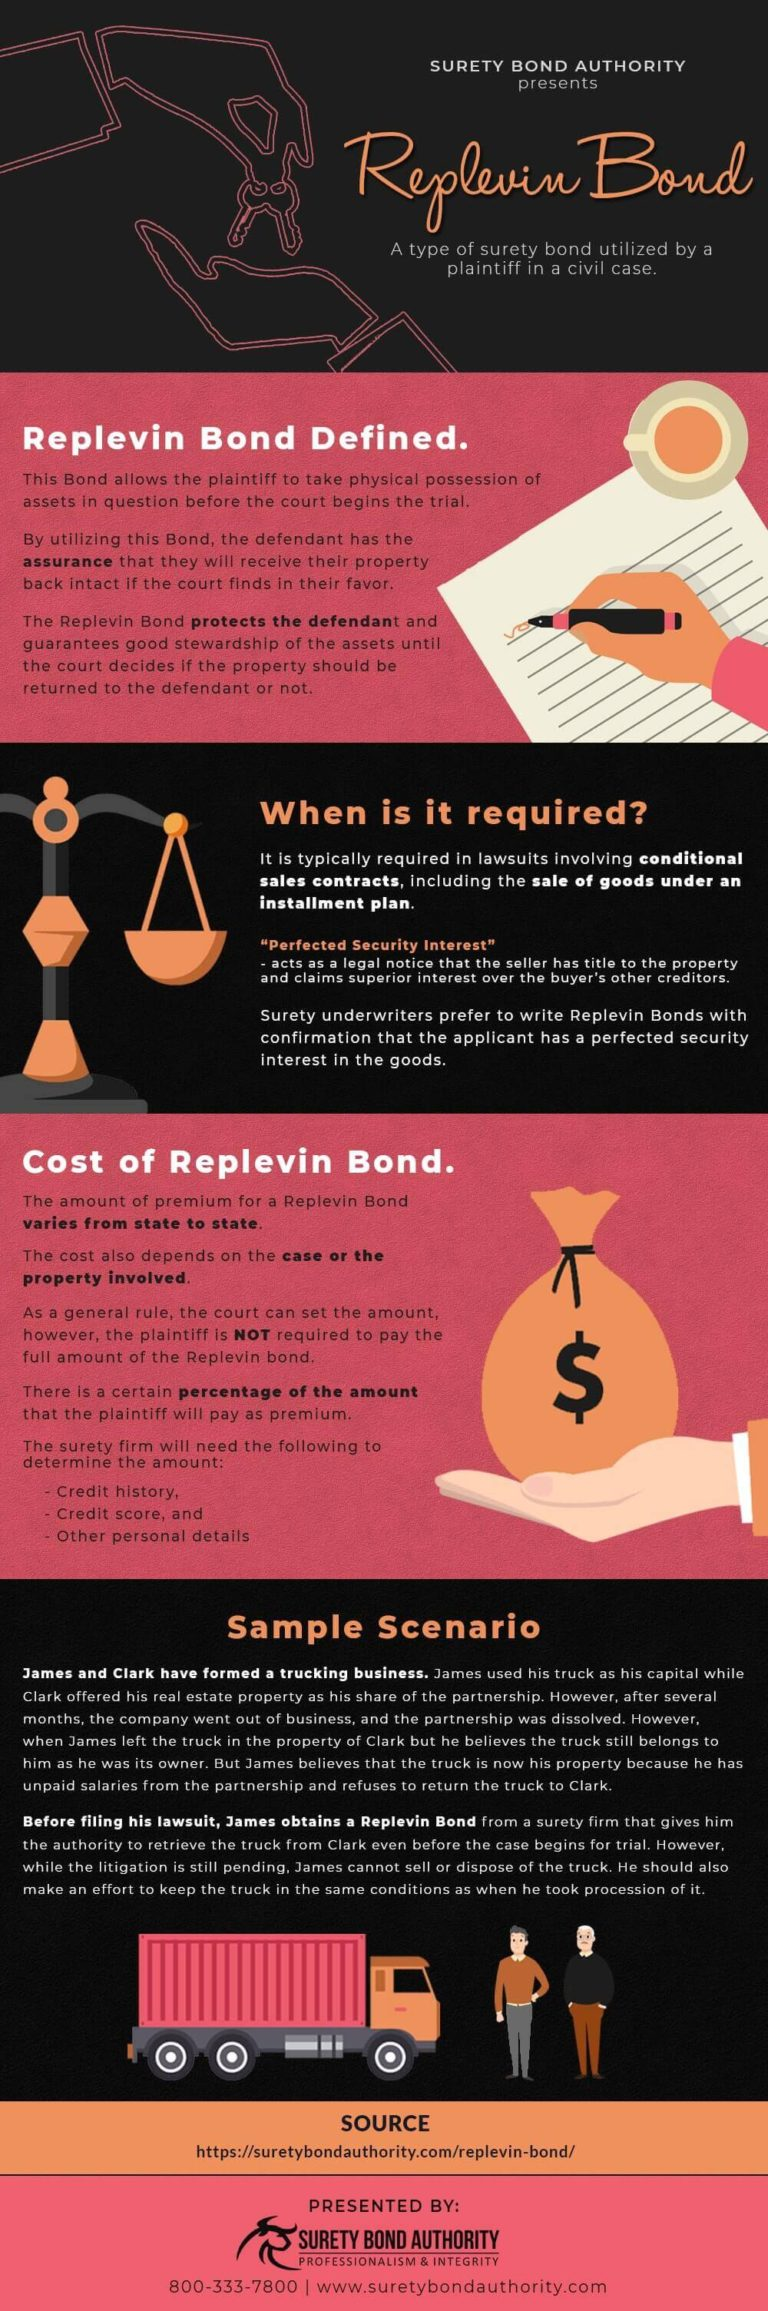 Replevin Bond Infographic